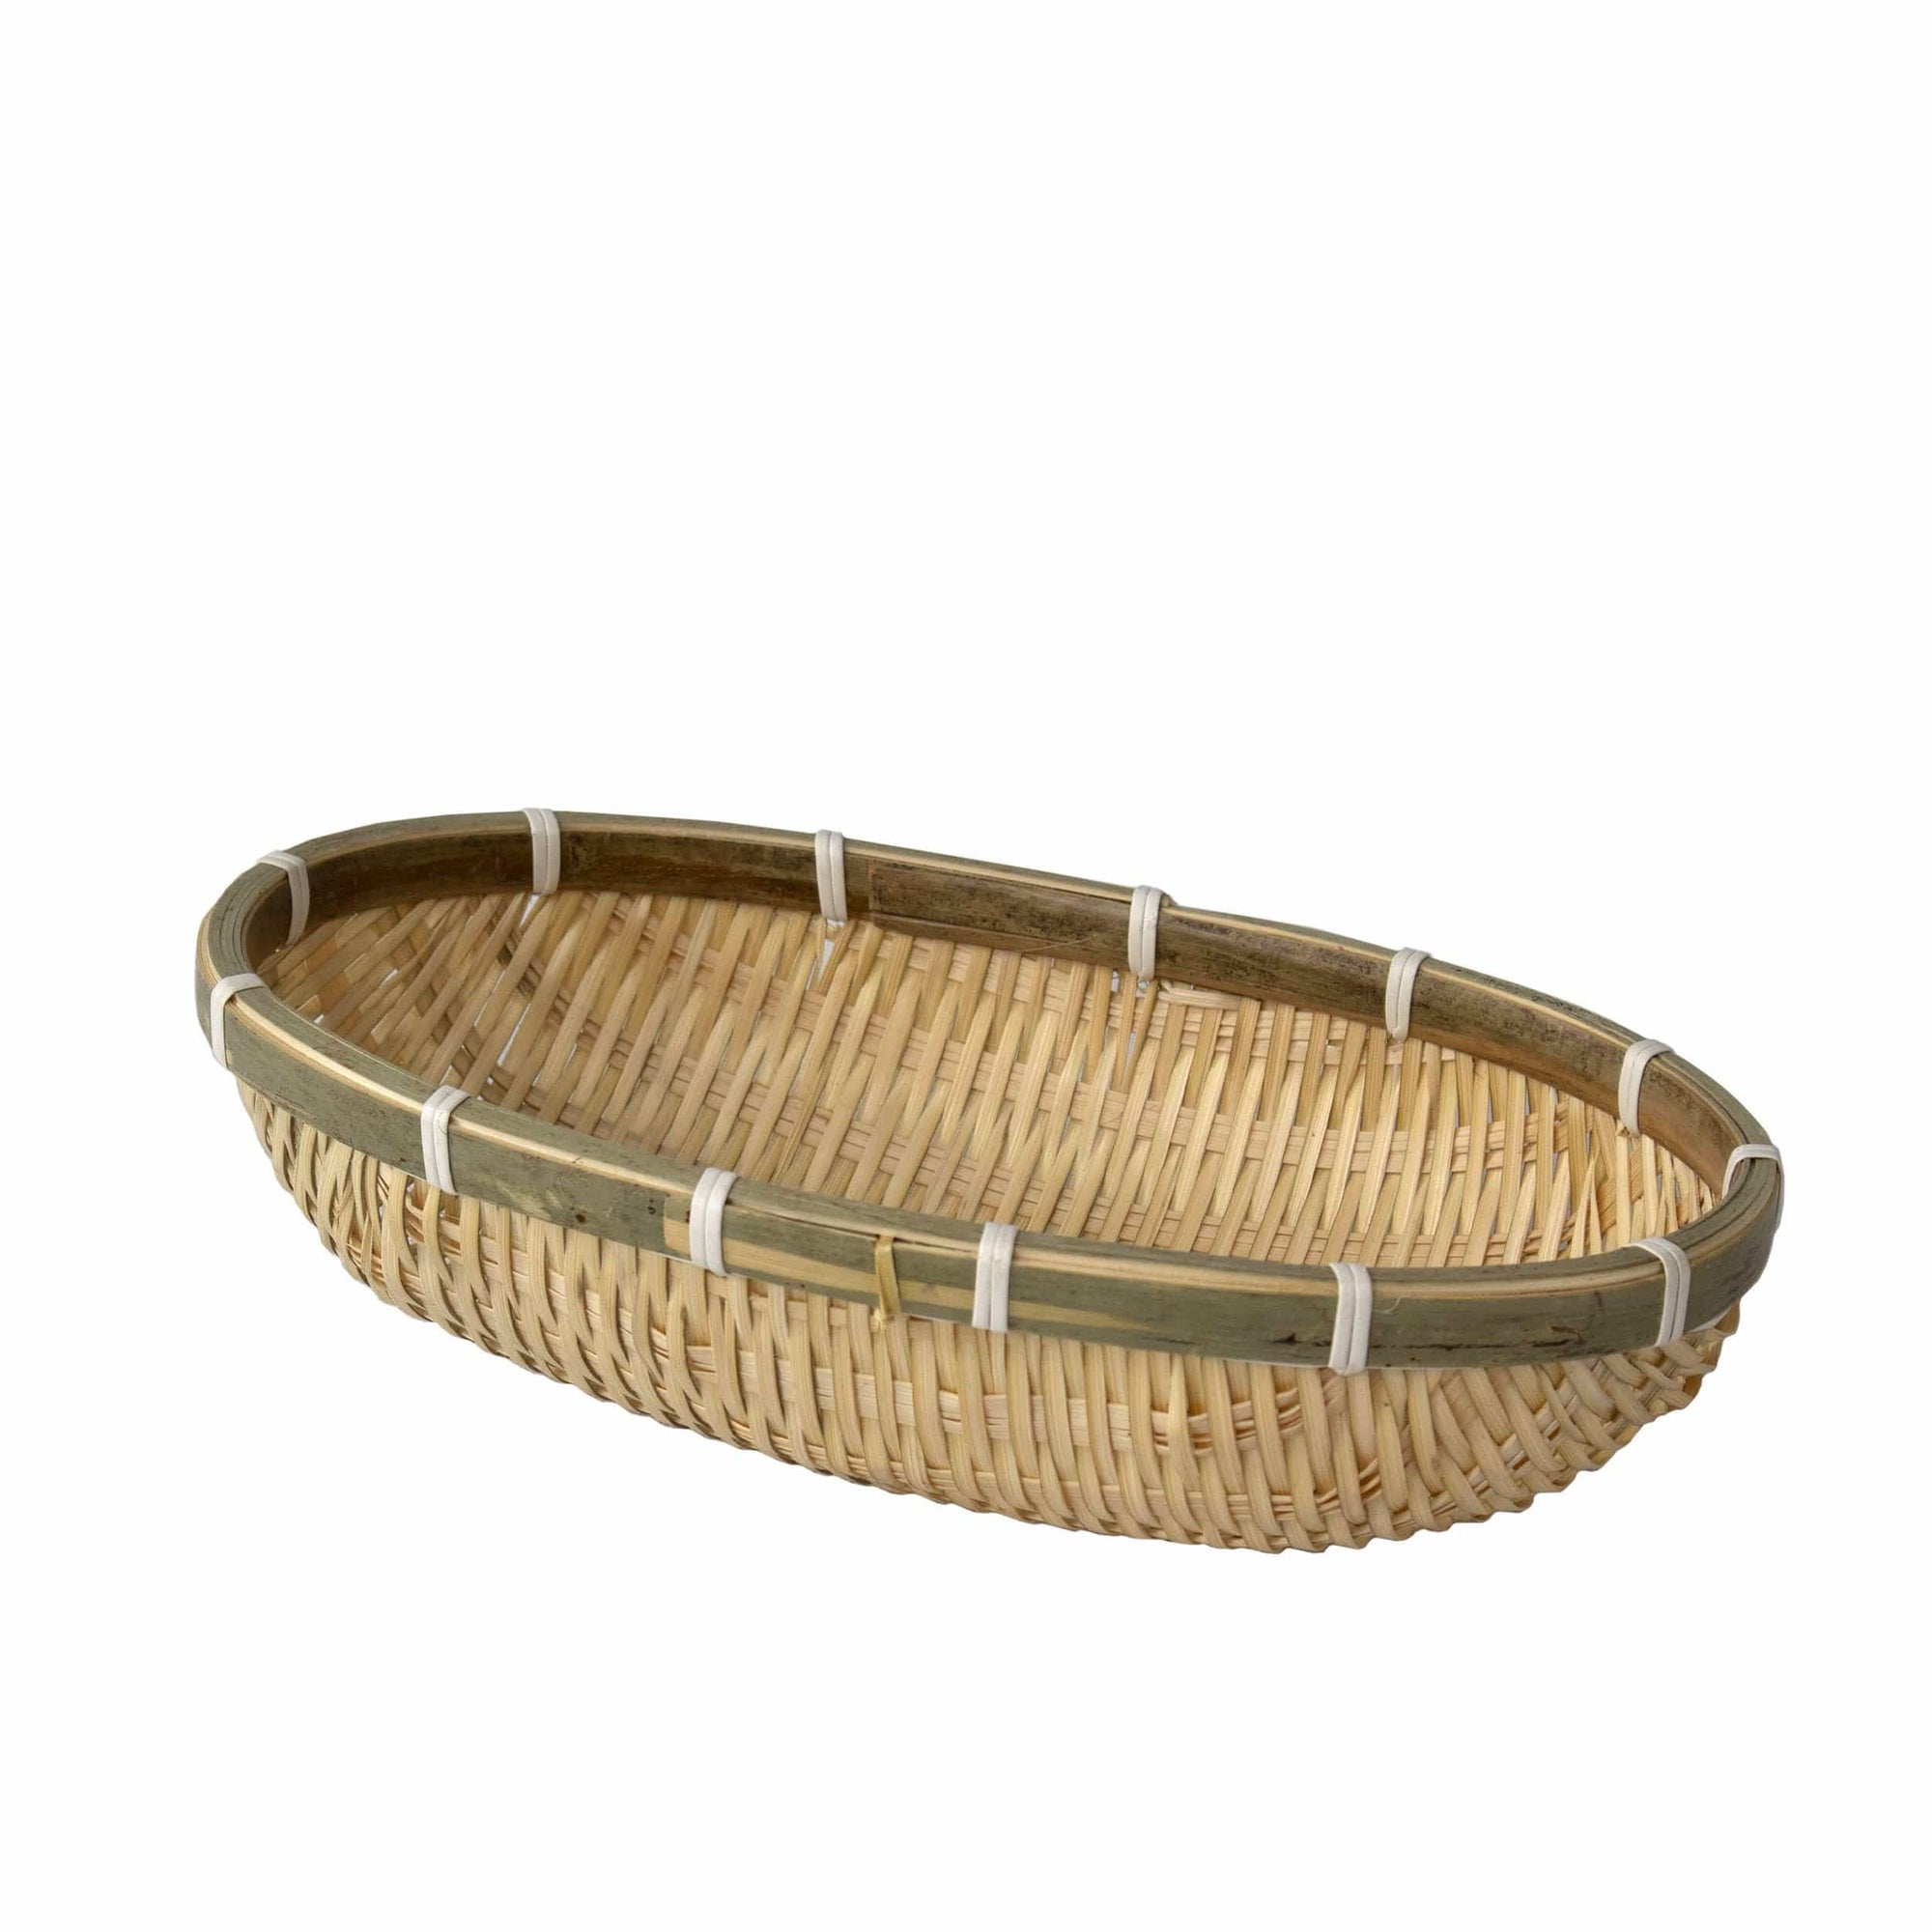 Made Terra Bamboo Basket Wicker Wire Fruit Basket Oval Storage Basket | Rustic Decorative Woven Fruit Bowl for Bread Fruit Snacks Candy | Households Items